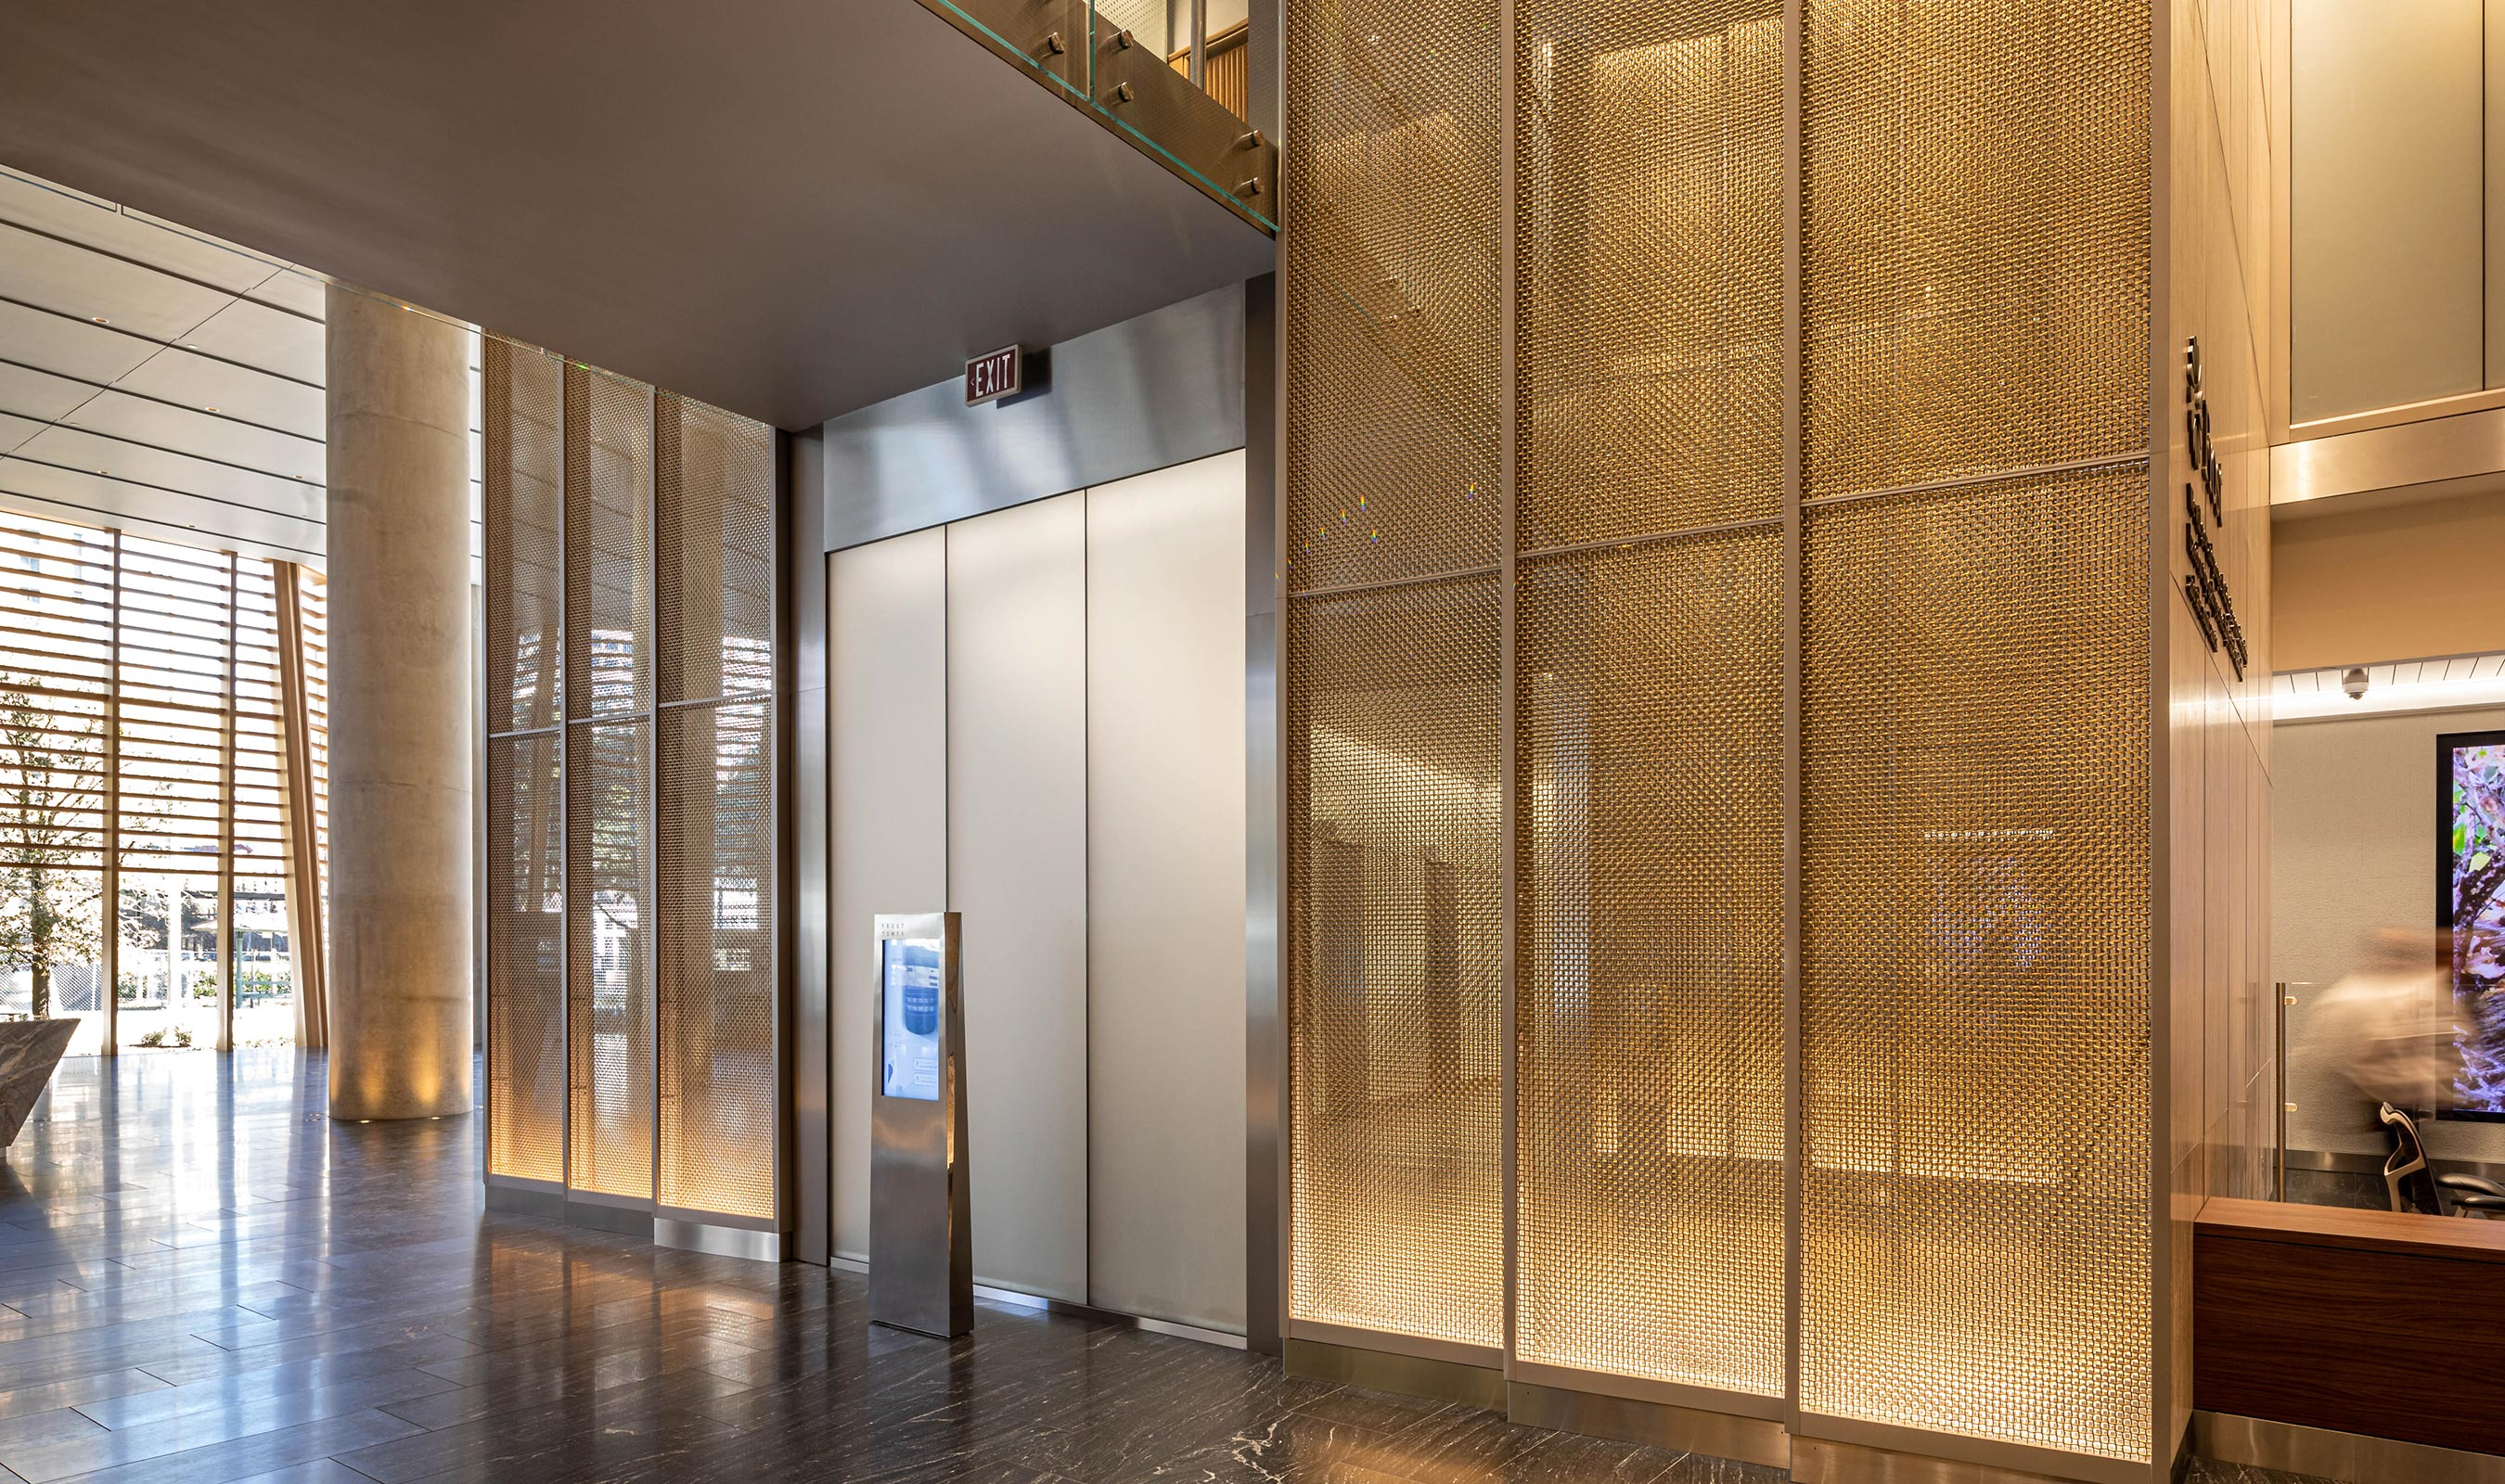 The soft colors of M22-80 in stainless steel and brass compliment the rest of the lobby area at Frost Tower in San Antonio.